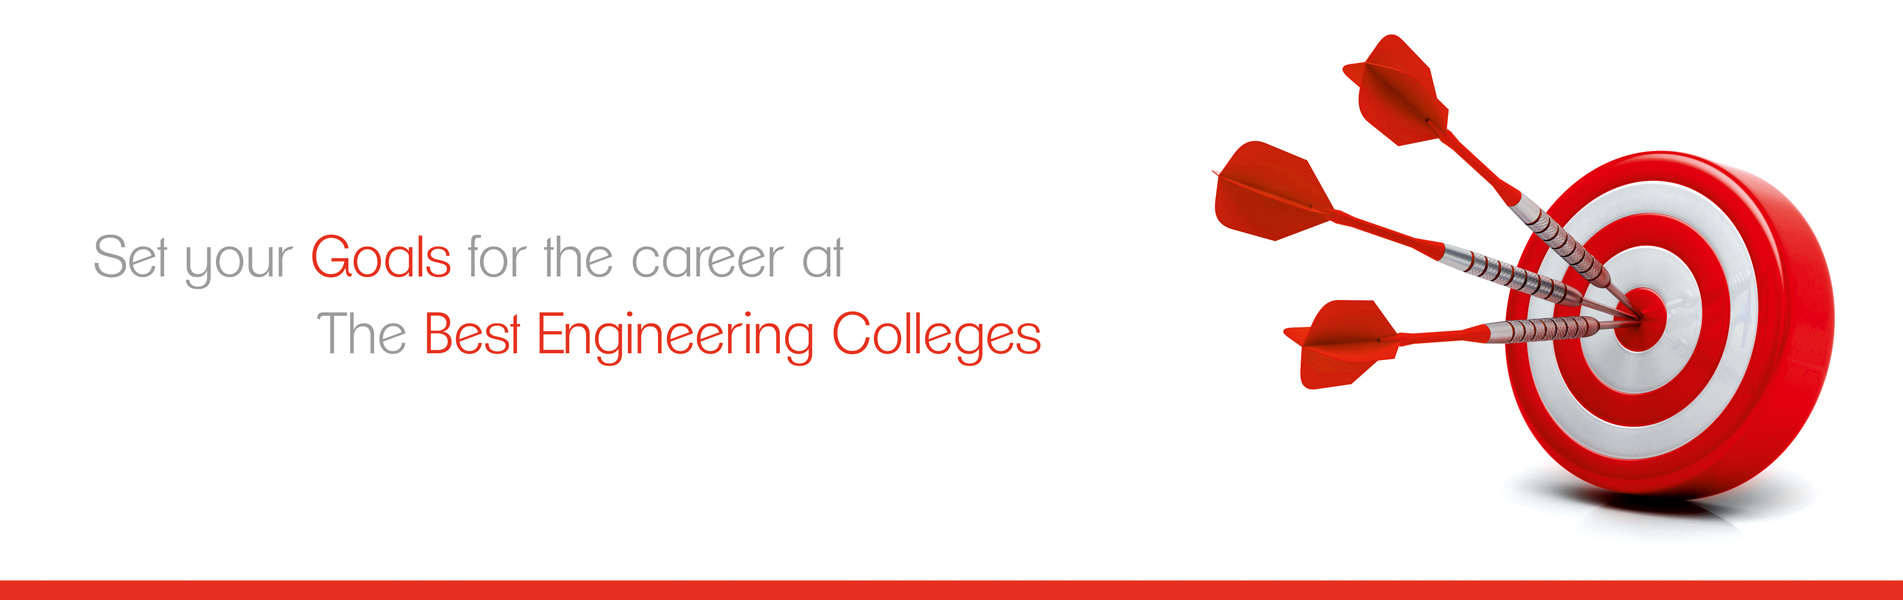 Set-Your-Goals-for-the-Career-at-the-Best-Engineering-Colleges